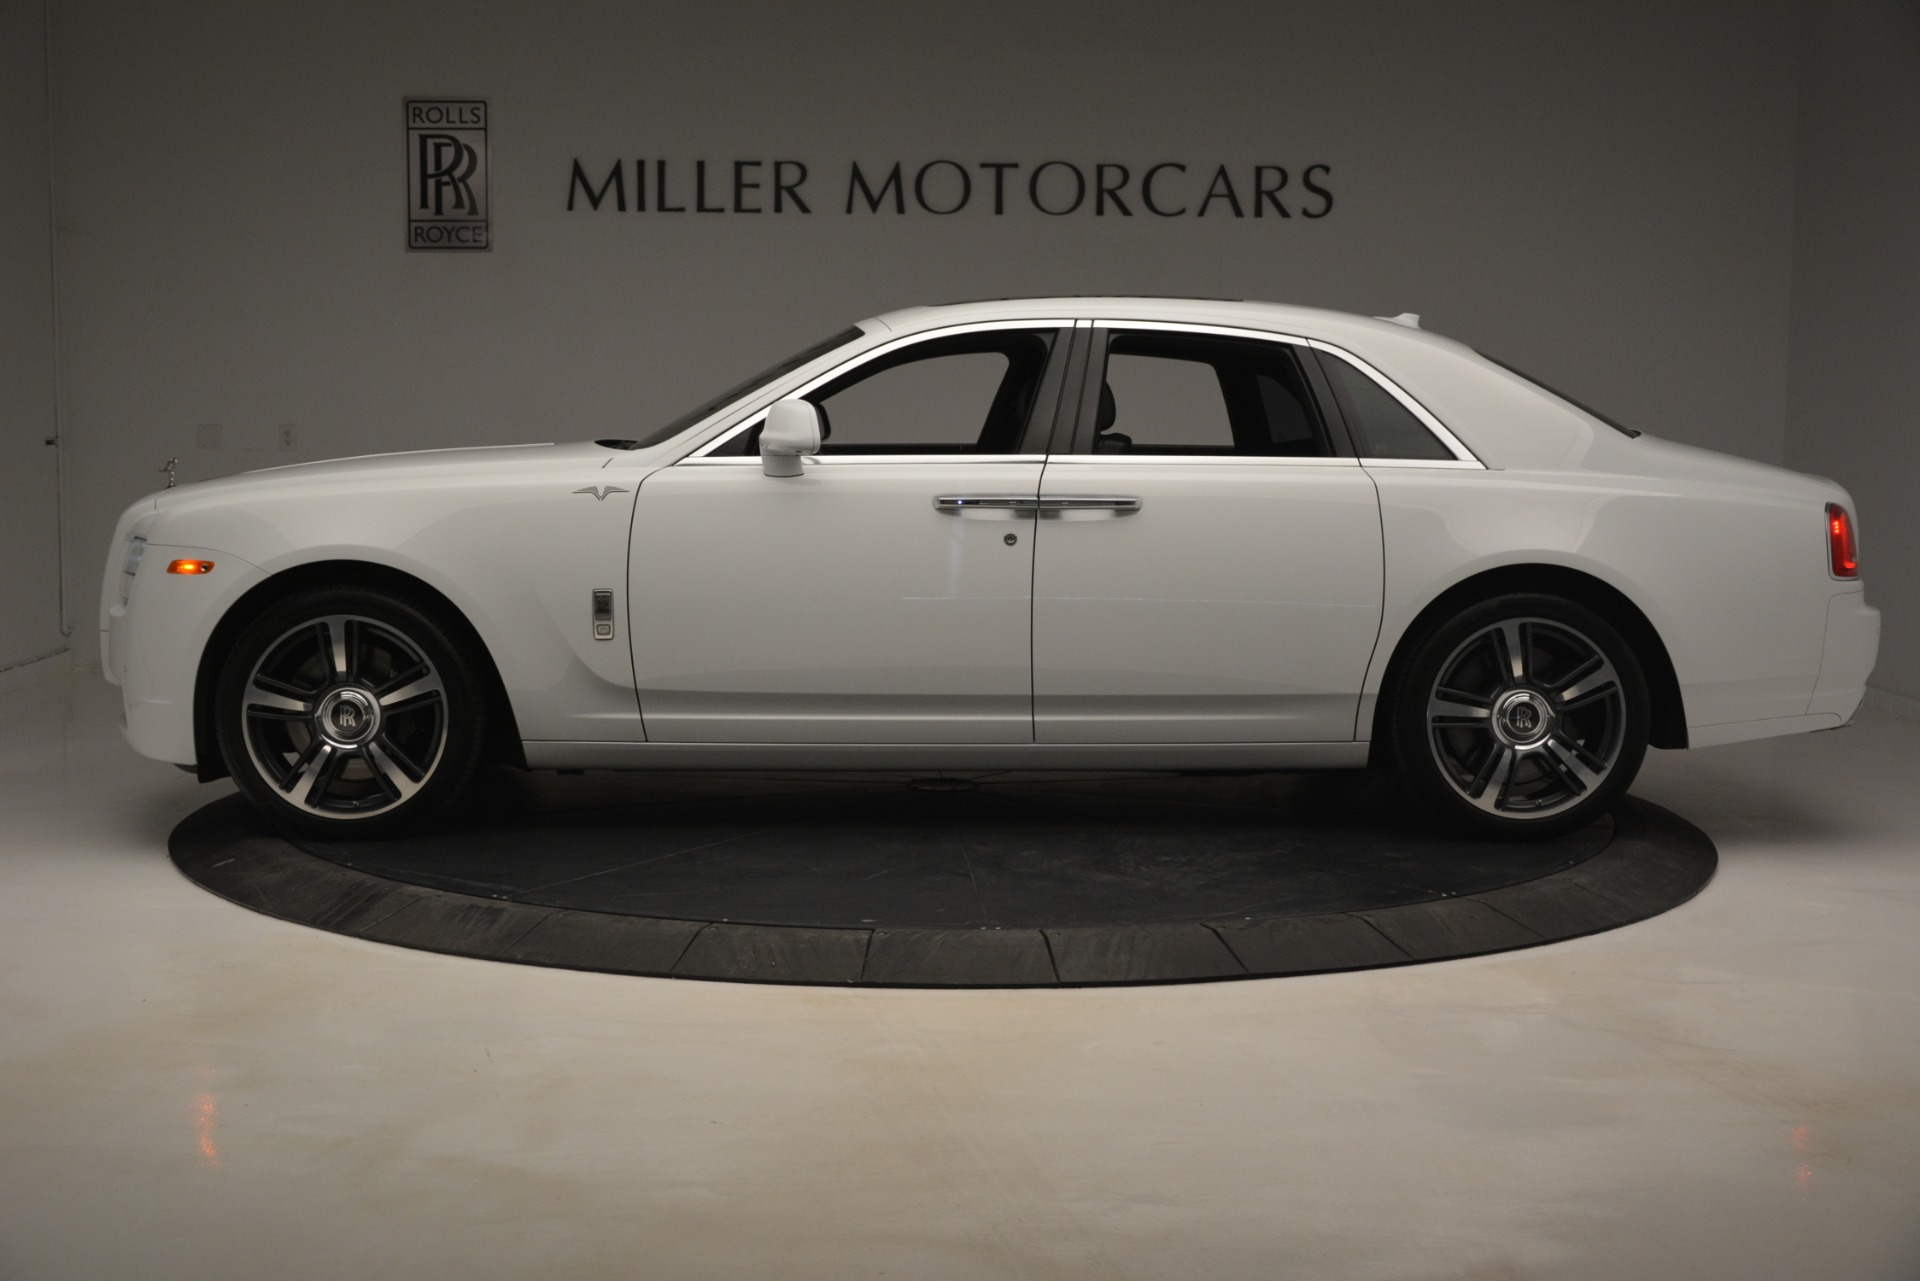 Used 2014 Rolls-Royce Ghost V-Spec For Sale In Westport, CT 2989_p4